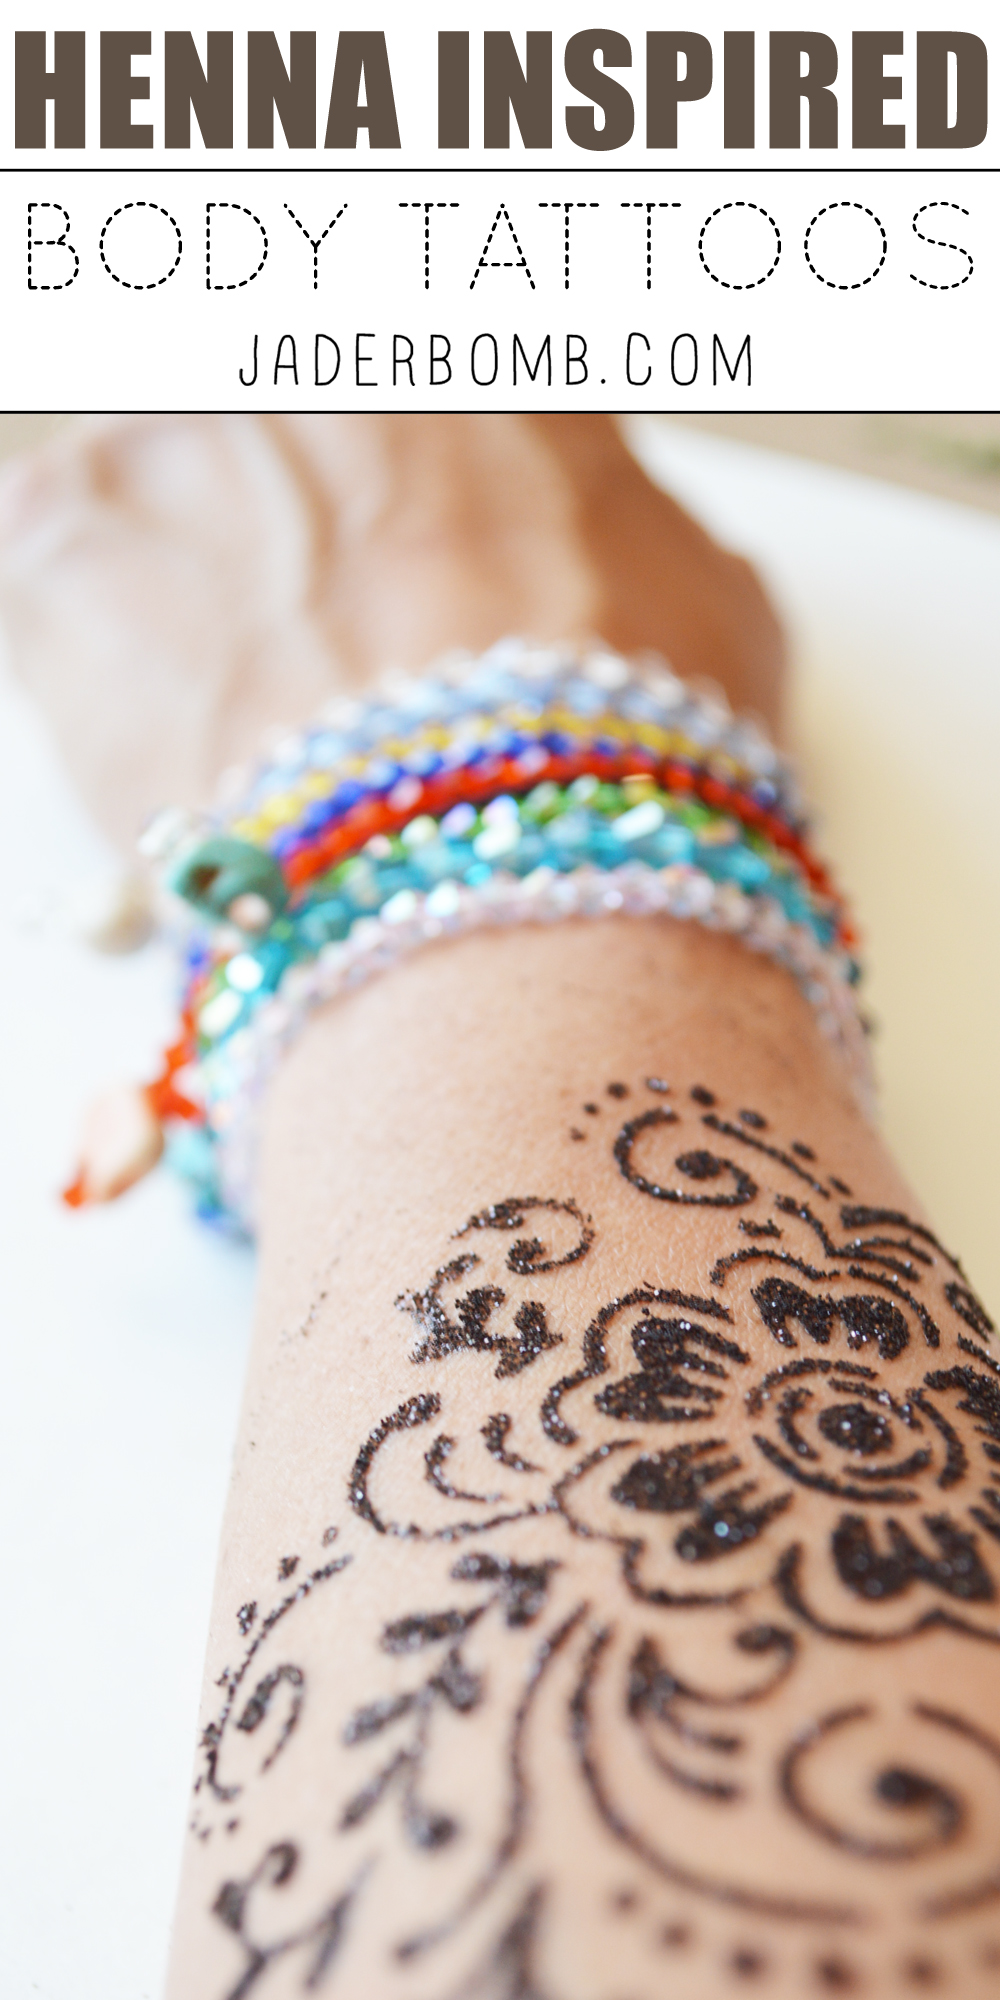 Tattoos Henna For Body: Henna Inspired Body Tattoos